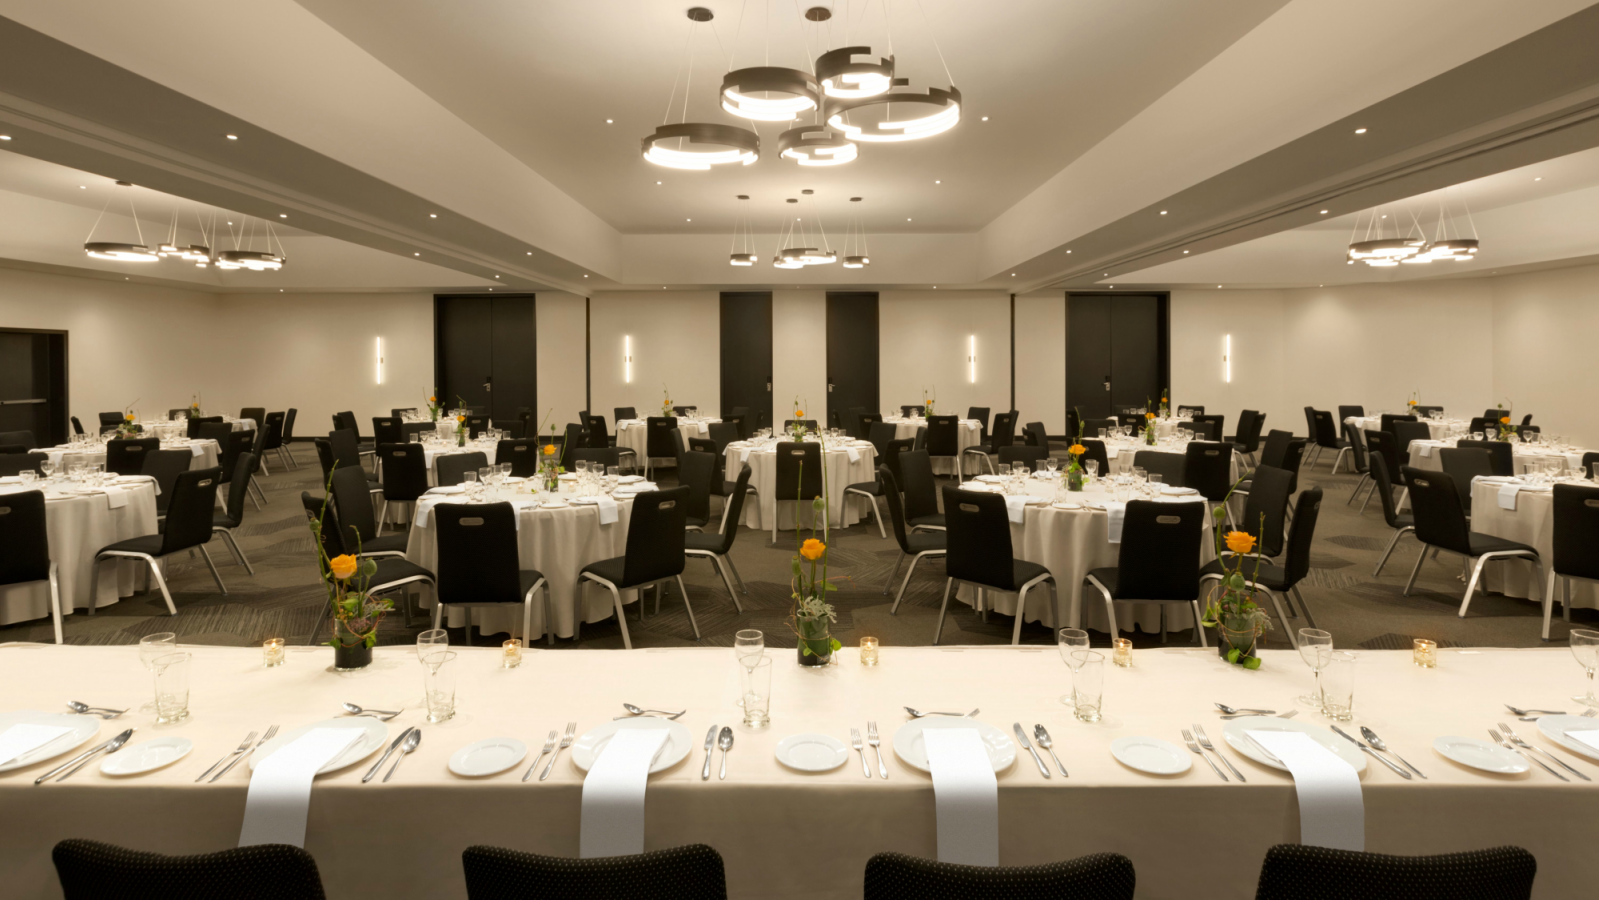 Meetings | Hotel PUR, Quebec, a Tribute Portfolio Hotel